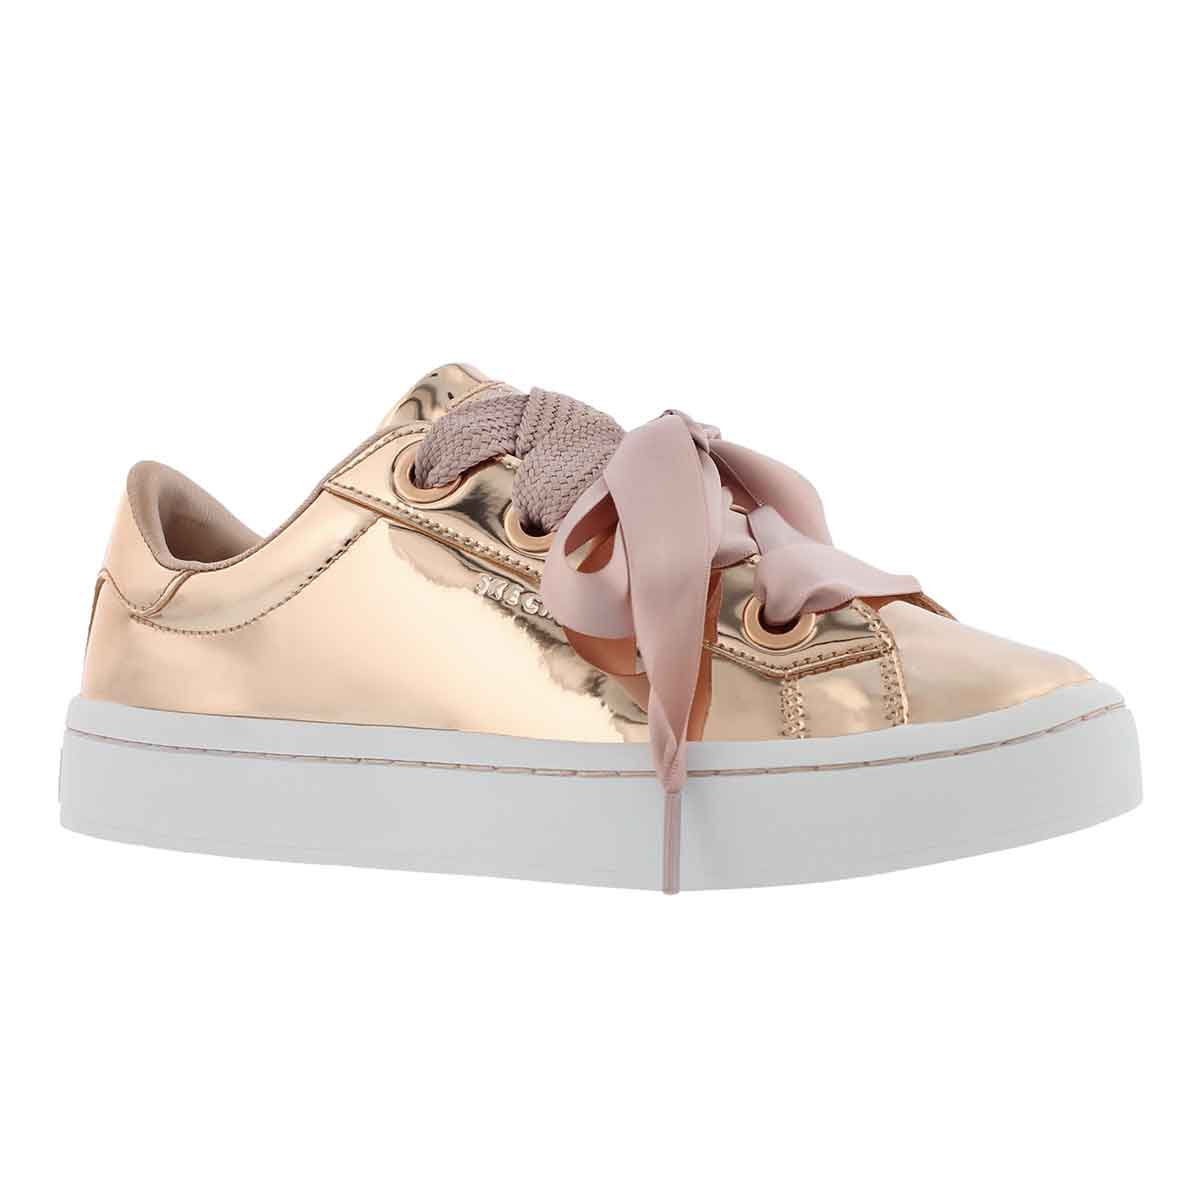 Women's HI-LITE rose gold lace up sneakers